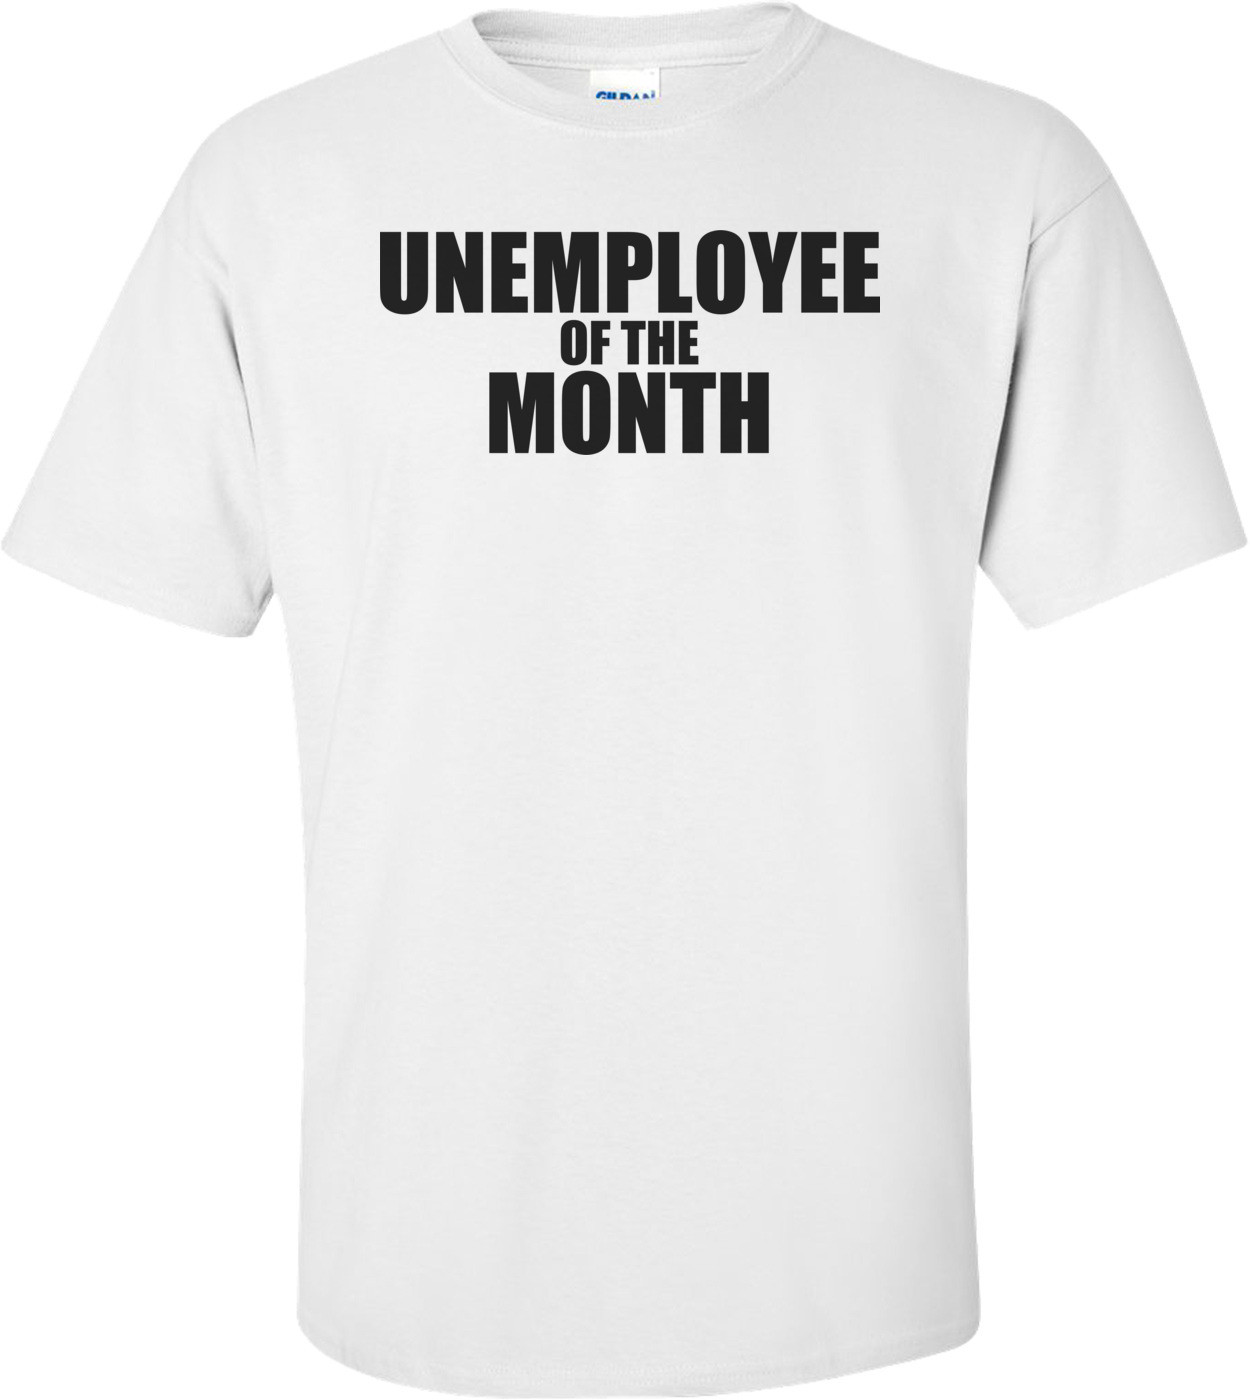 Unemployee Of The Month Funny T-shirt